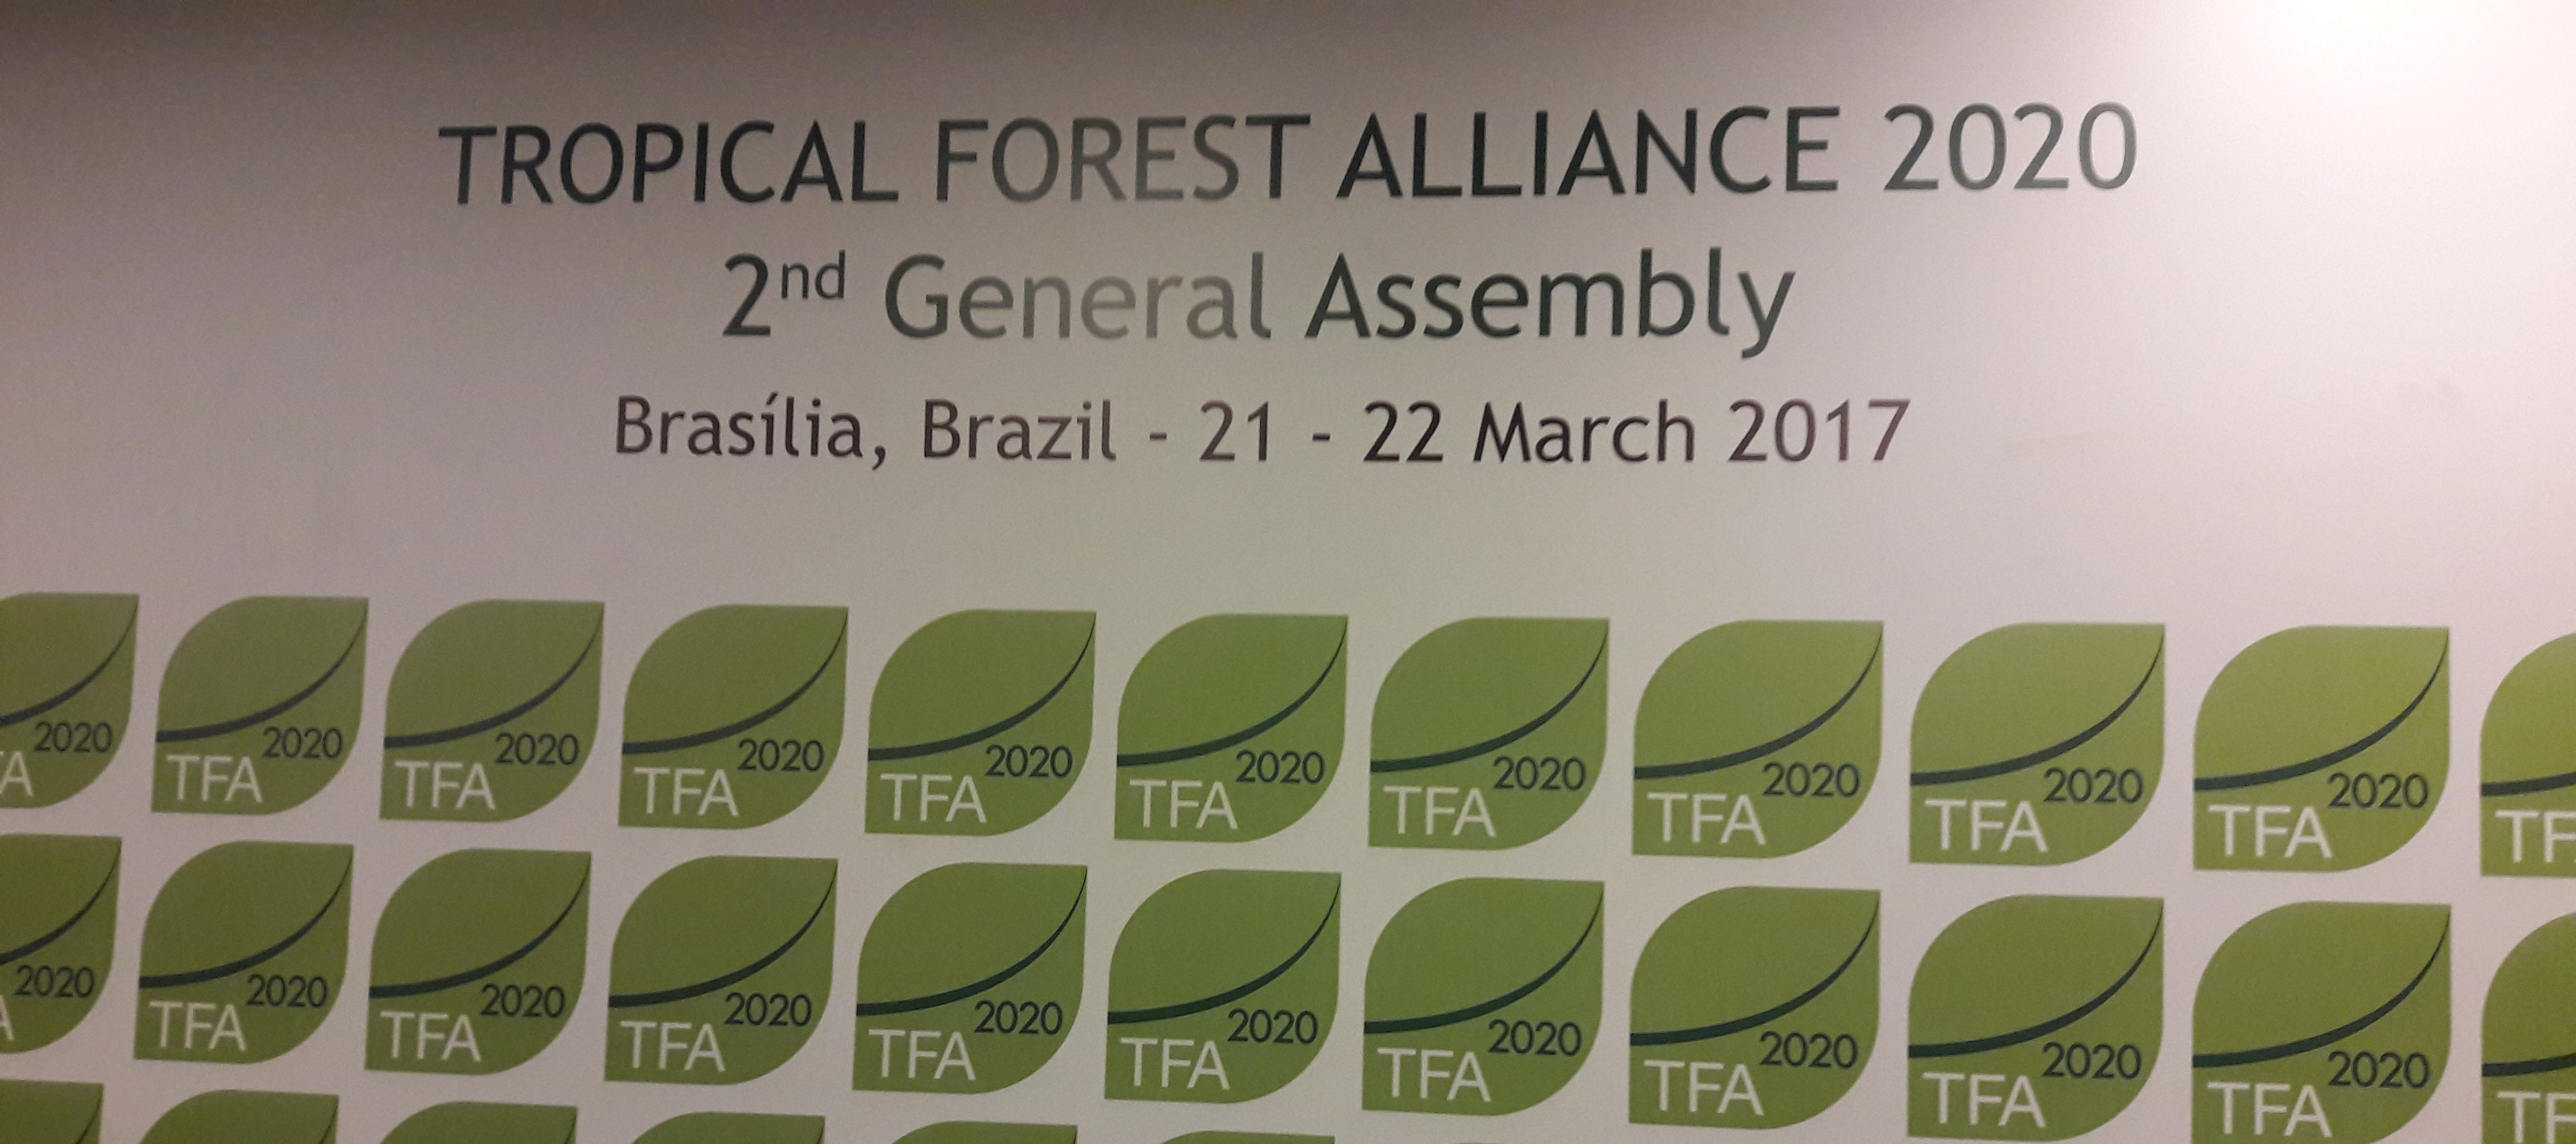 Journée Internationale des forêts/Tropical Forest Alliance 2020